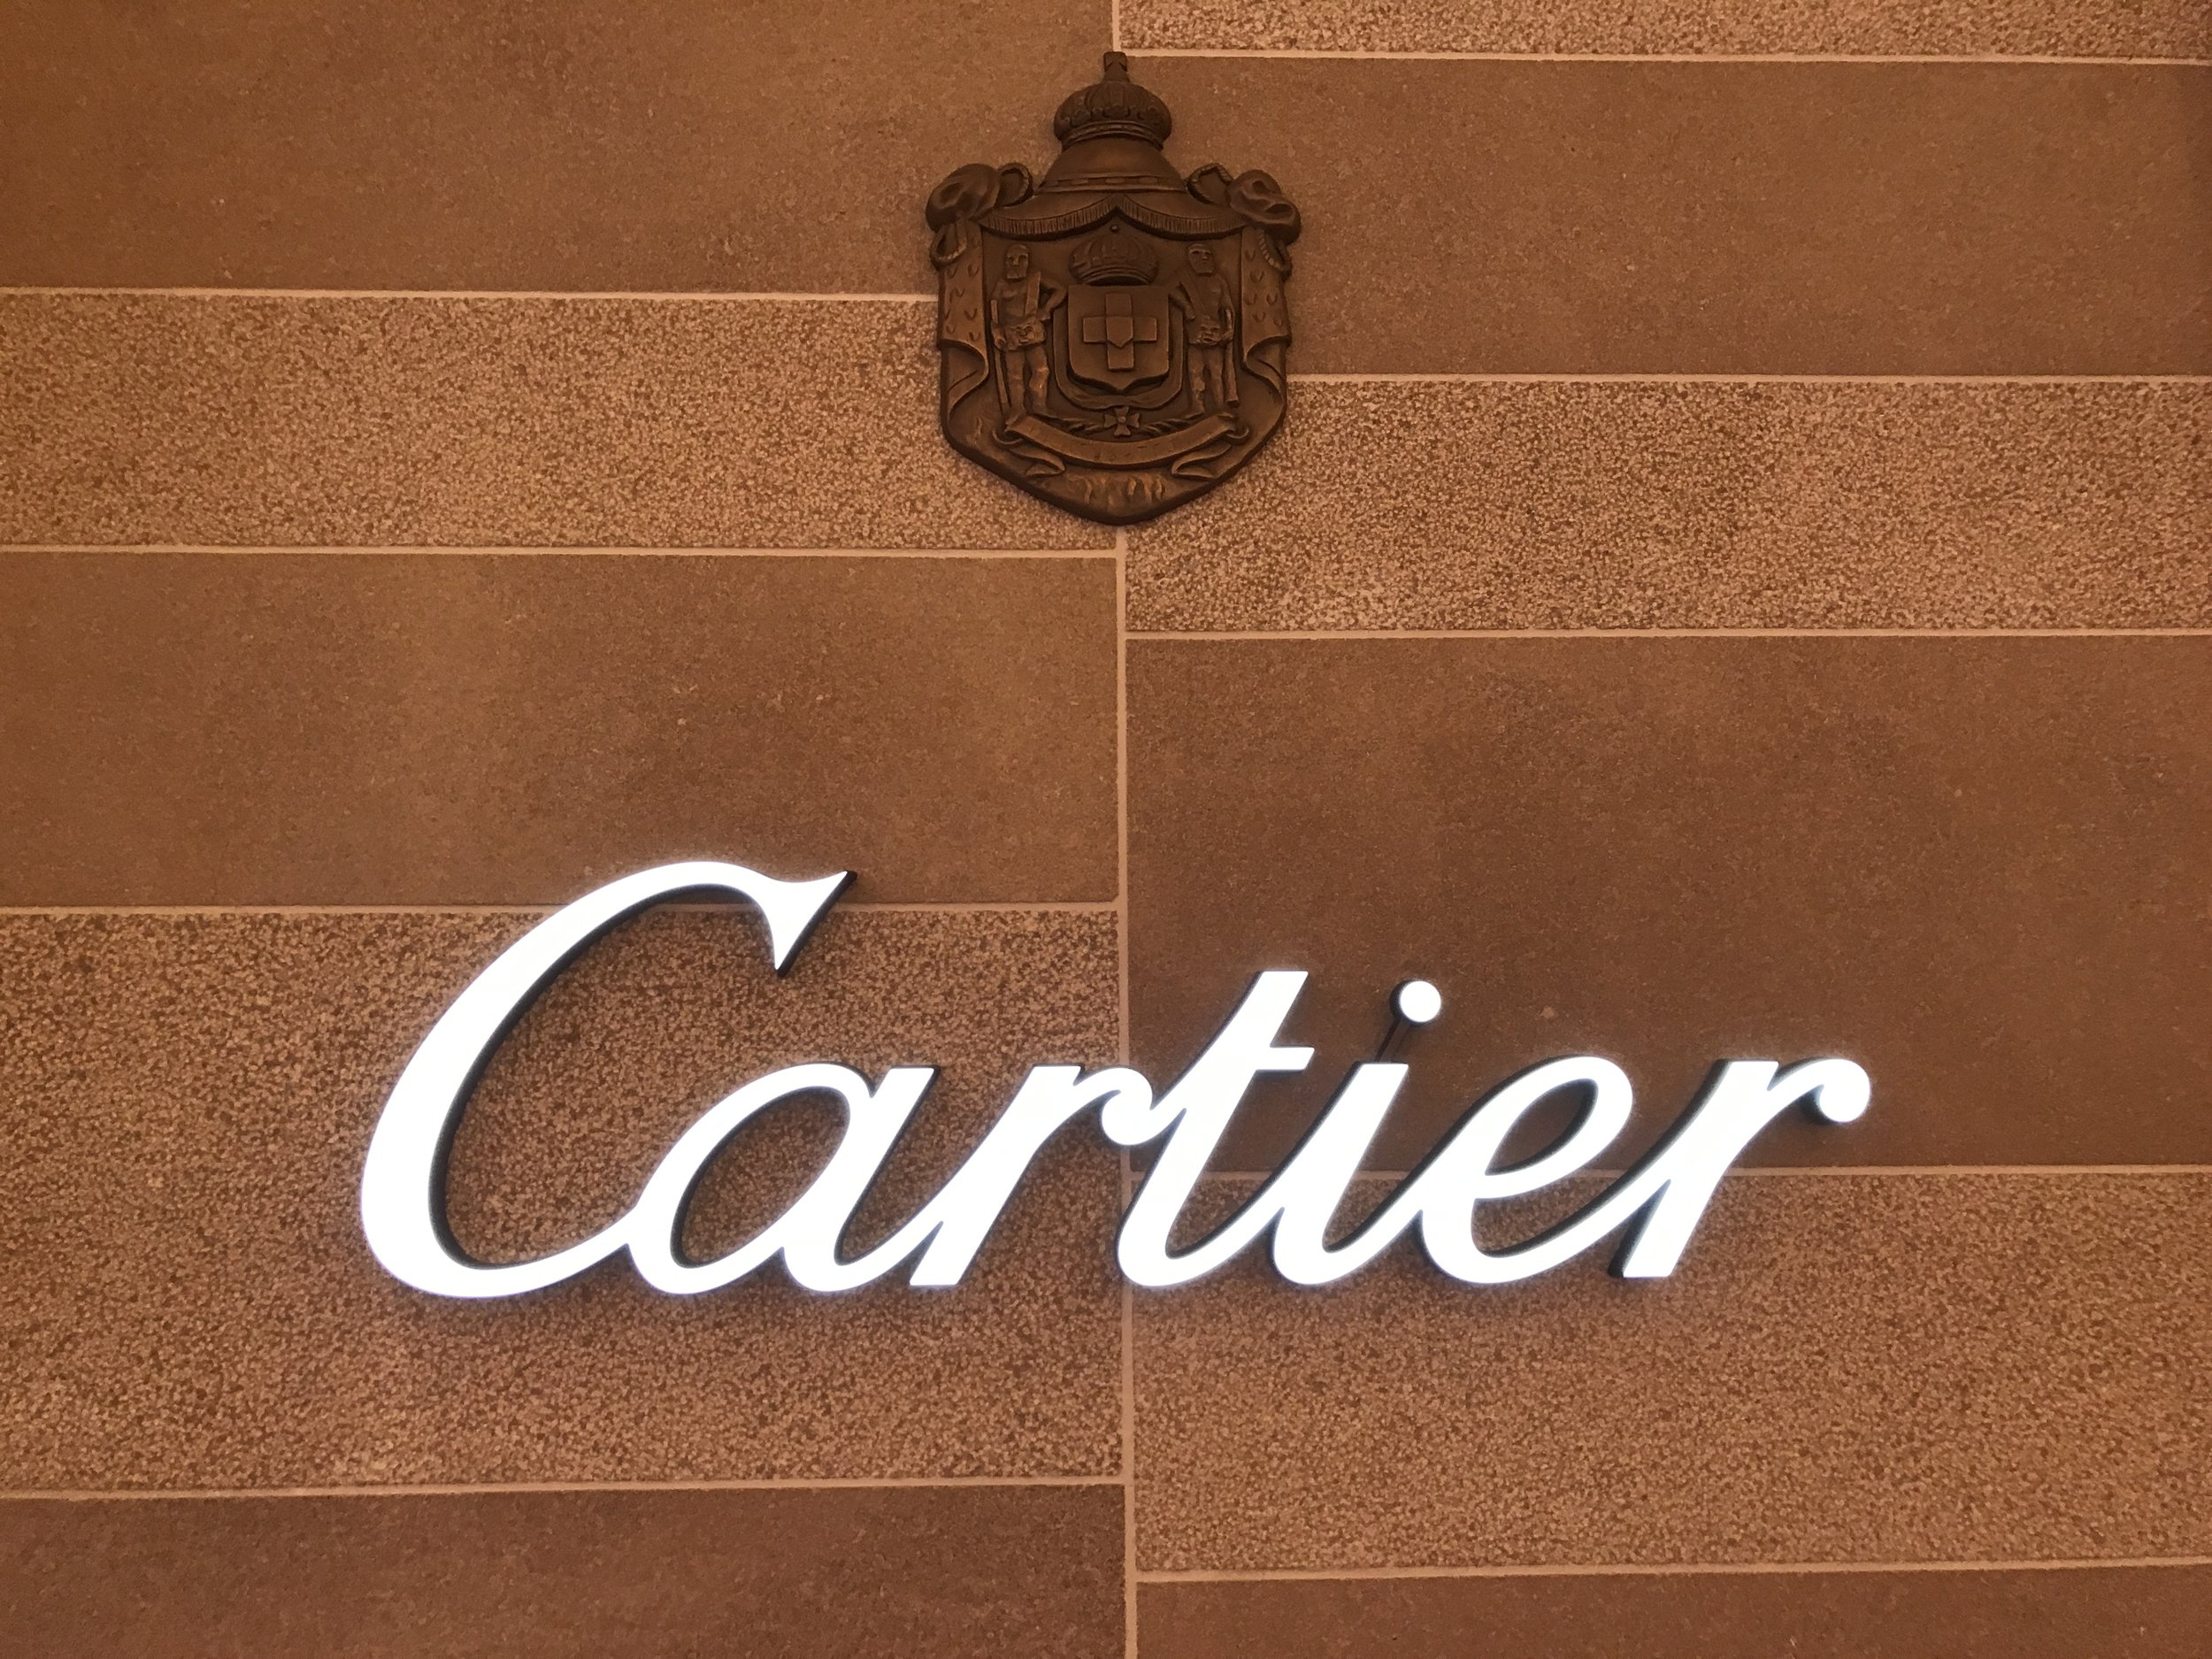 Cartier Store_Tenant Improvement_Construction Management_PDG1.JPG